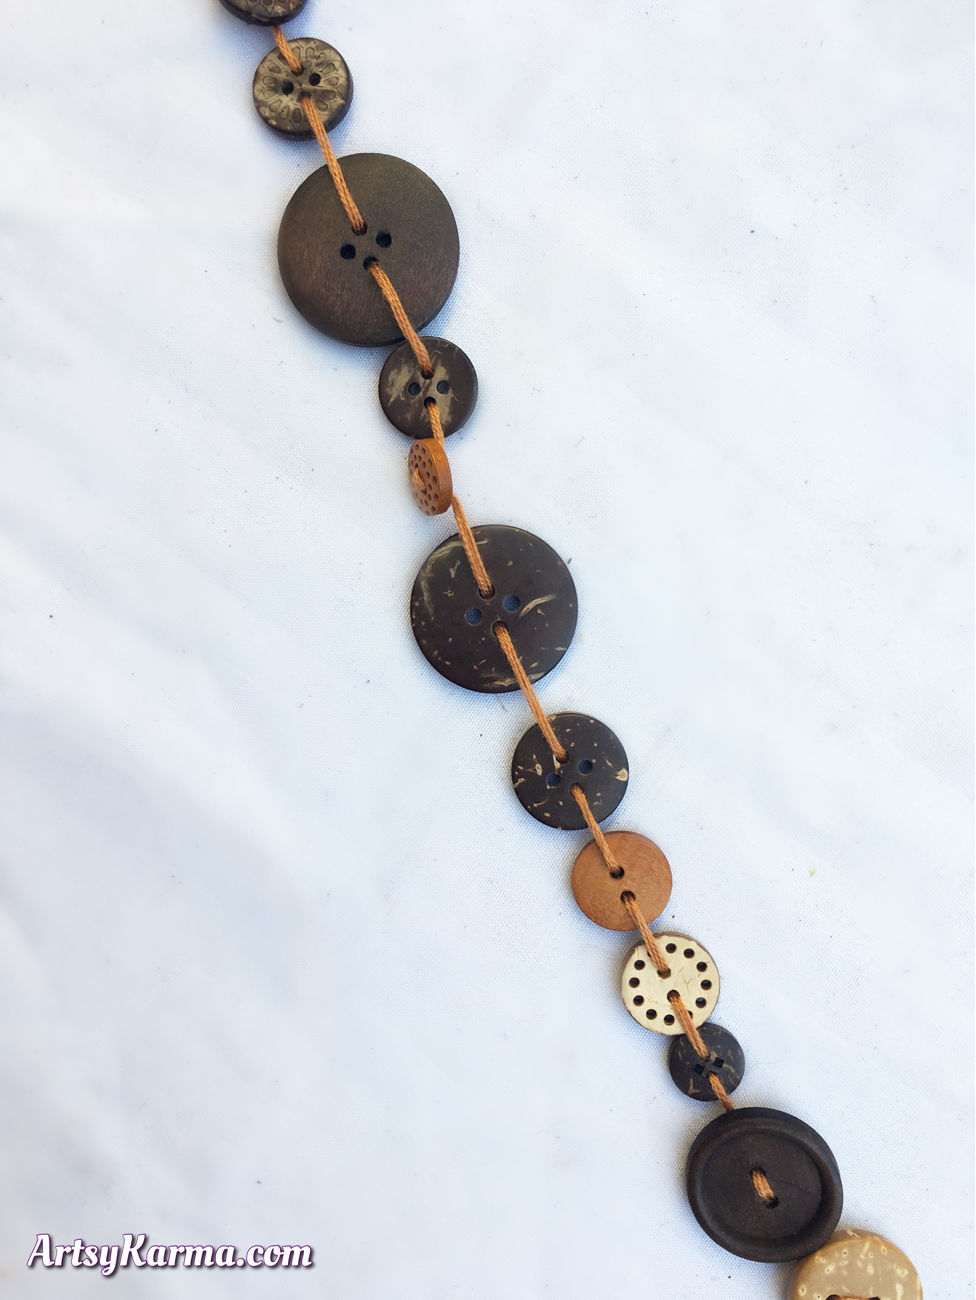 Craft project using buttons